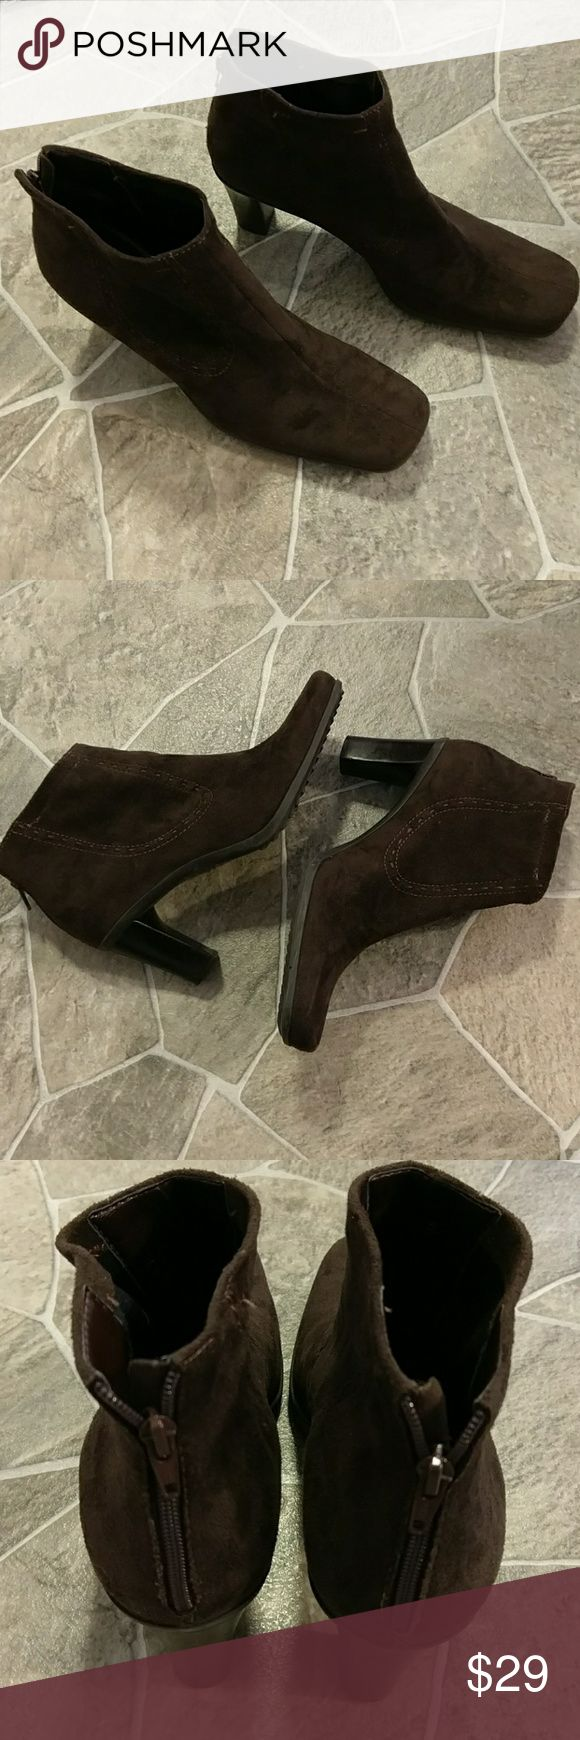 Sale! Franco Sarto Booties 7.5 Very gently used, super nice! Size 7.5 Franco Sarto Shoes Ankle Boots & Booties